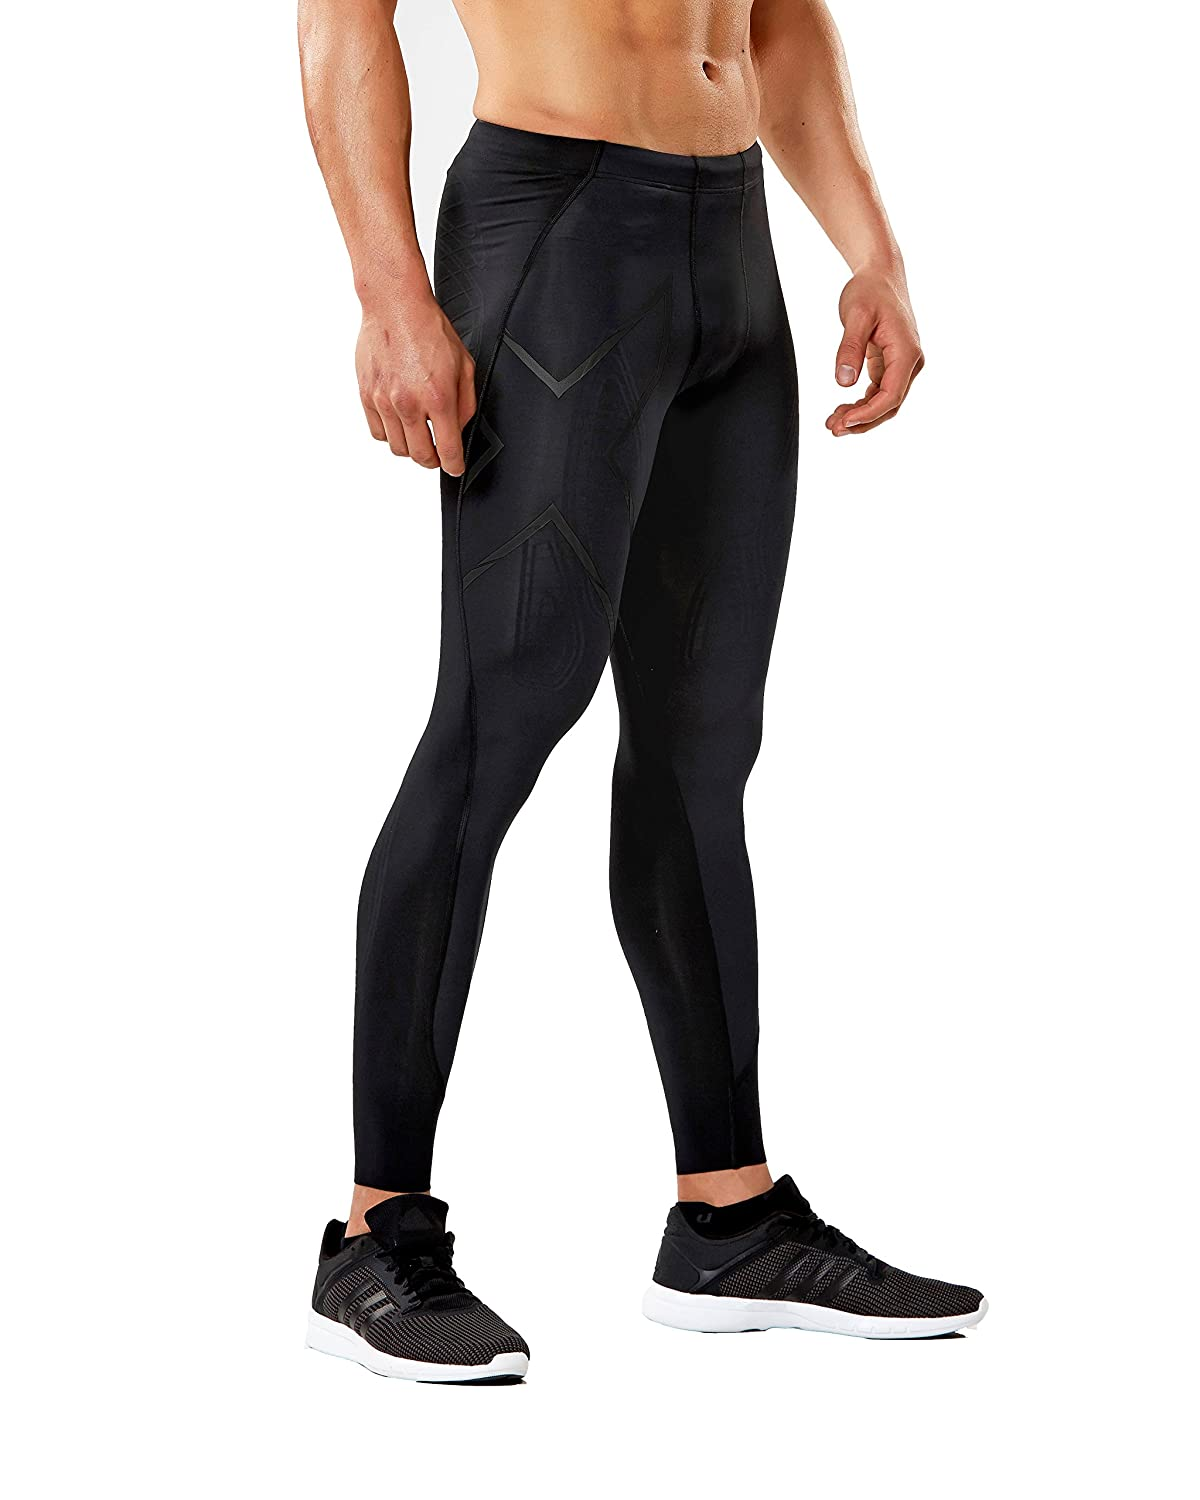 Image of 2XU Men's MCS Cross Training Compression Tights Compression Pants & Tights